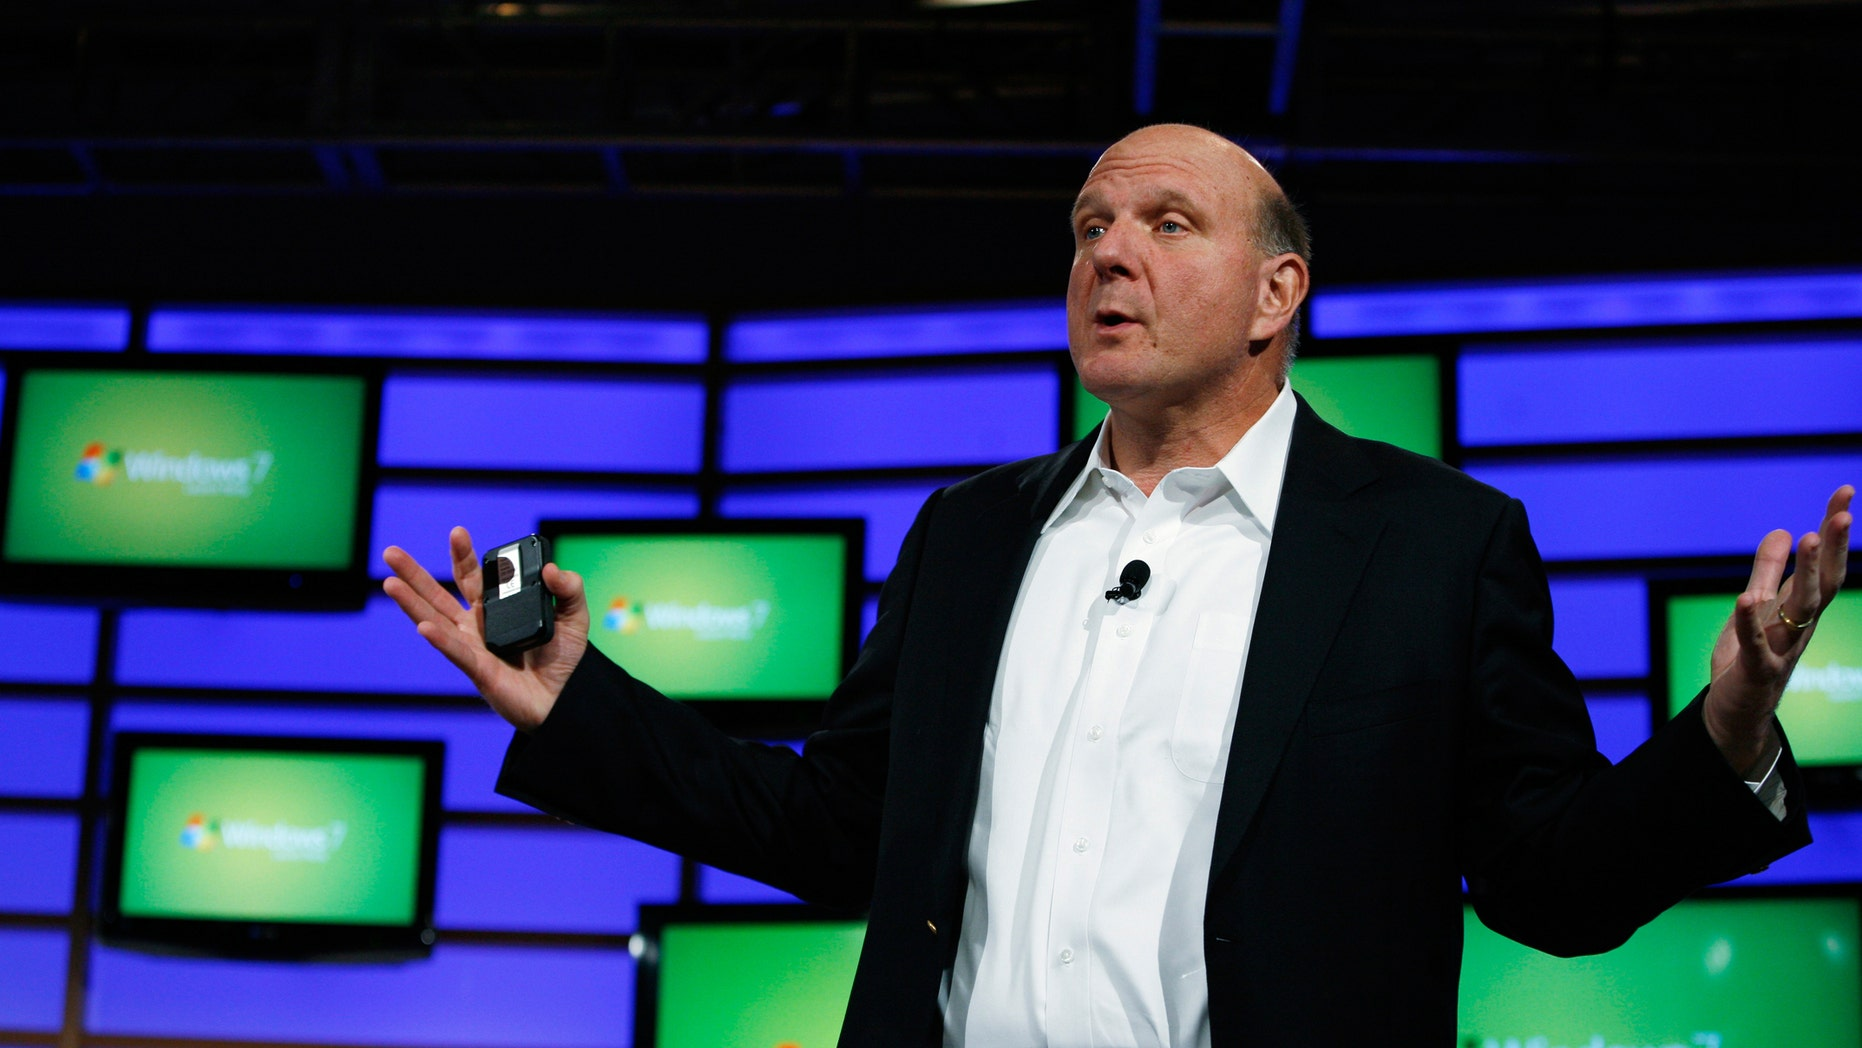 Microsoft CEO Steve Ballmer is riding Google's Android platform to success and profits.